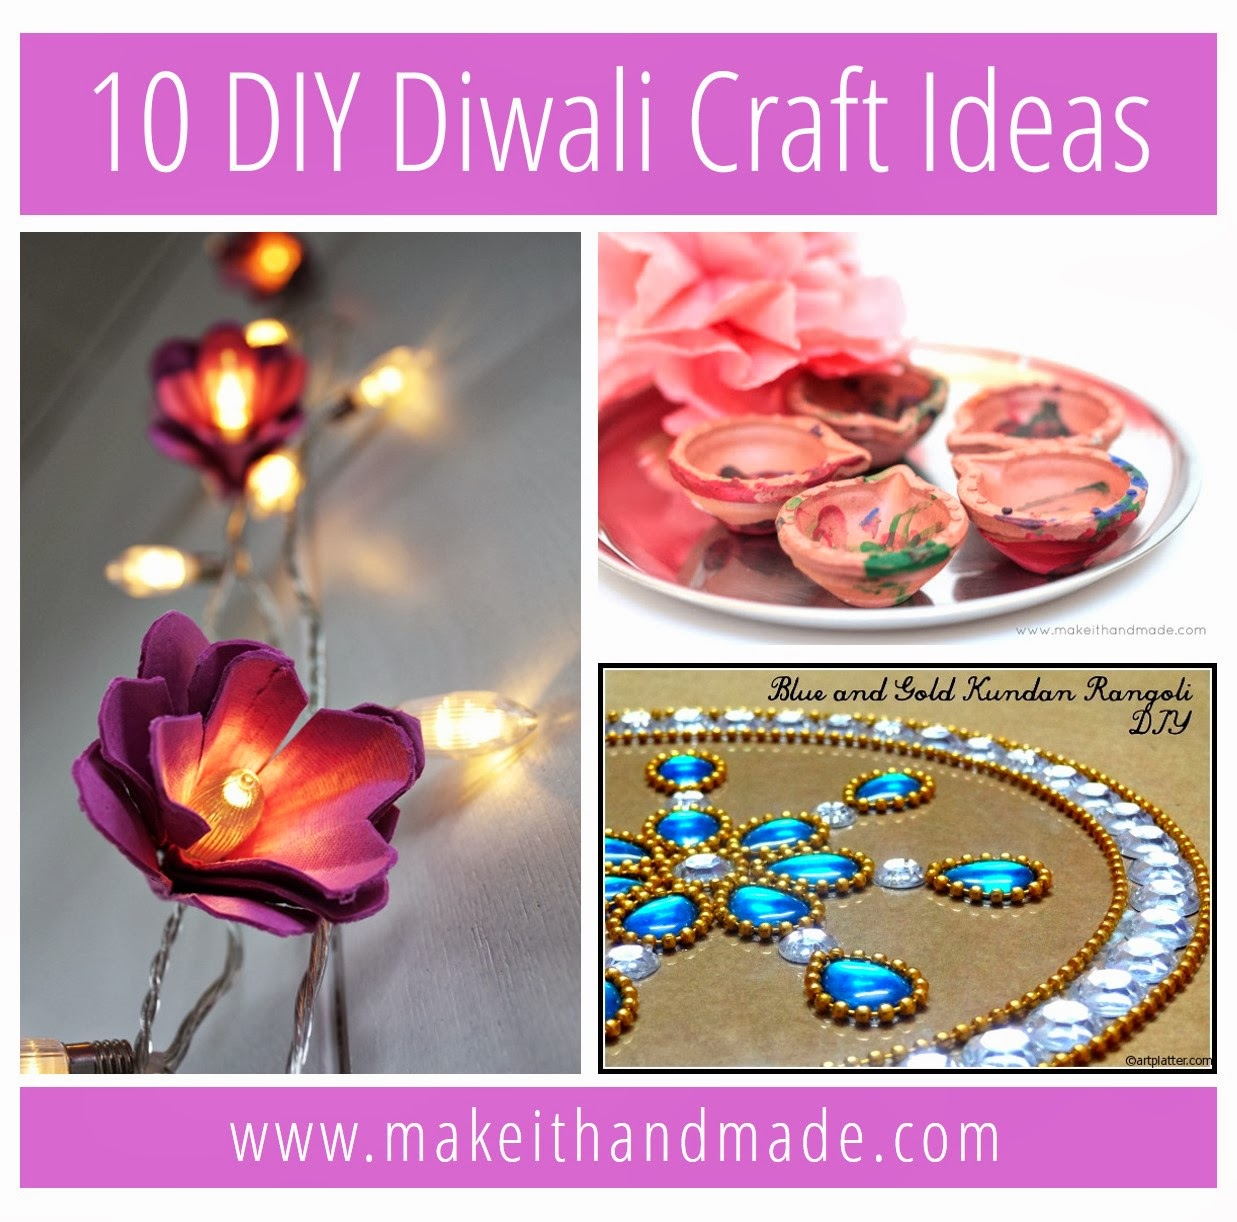 Diwali Decoration Ideas And Crafts Make It Handmade 10 Diy Diwali Craft Ideas